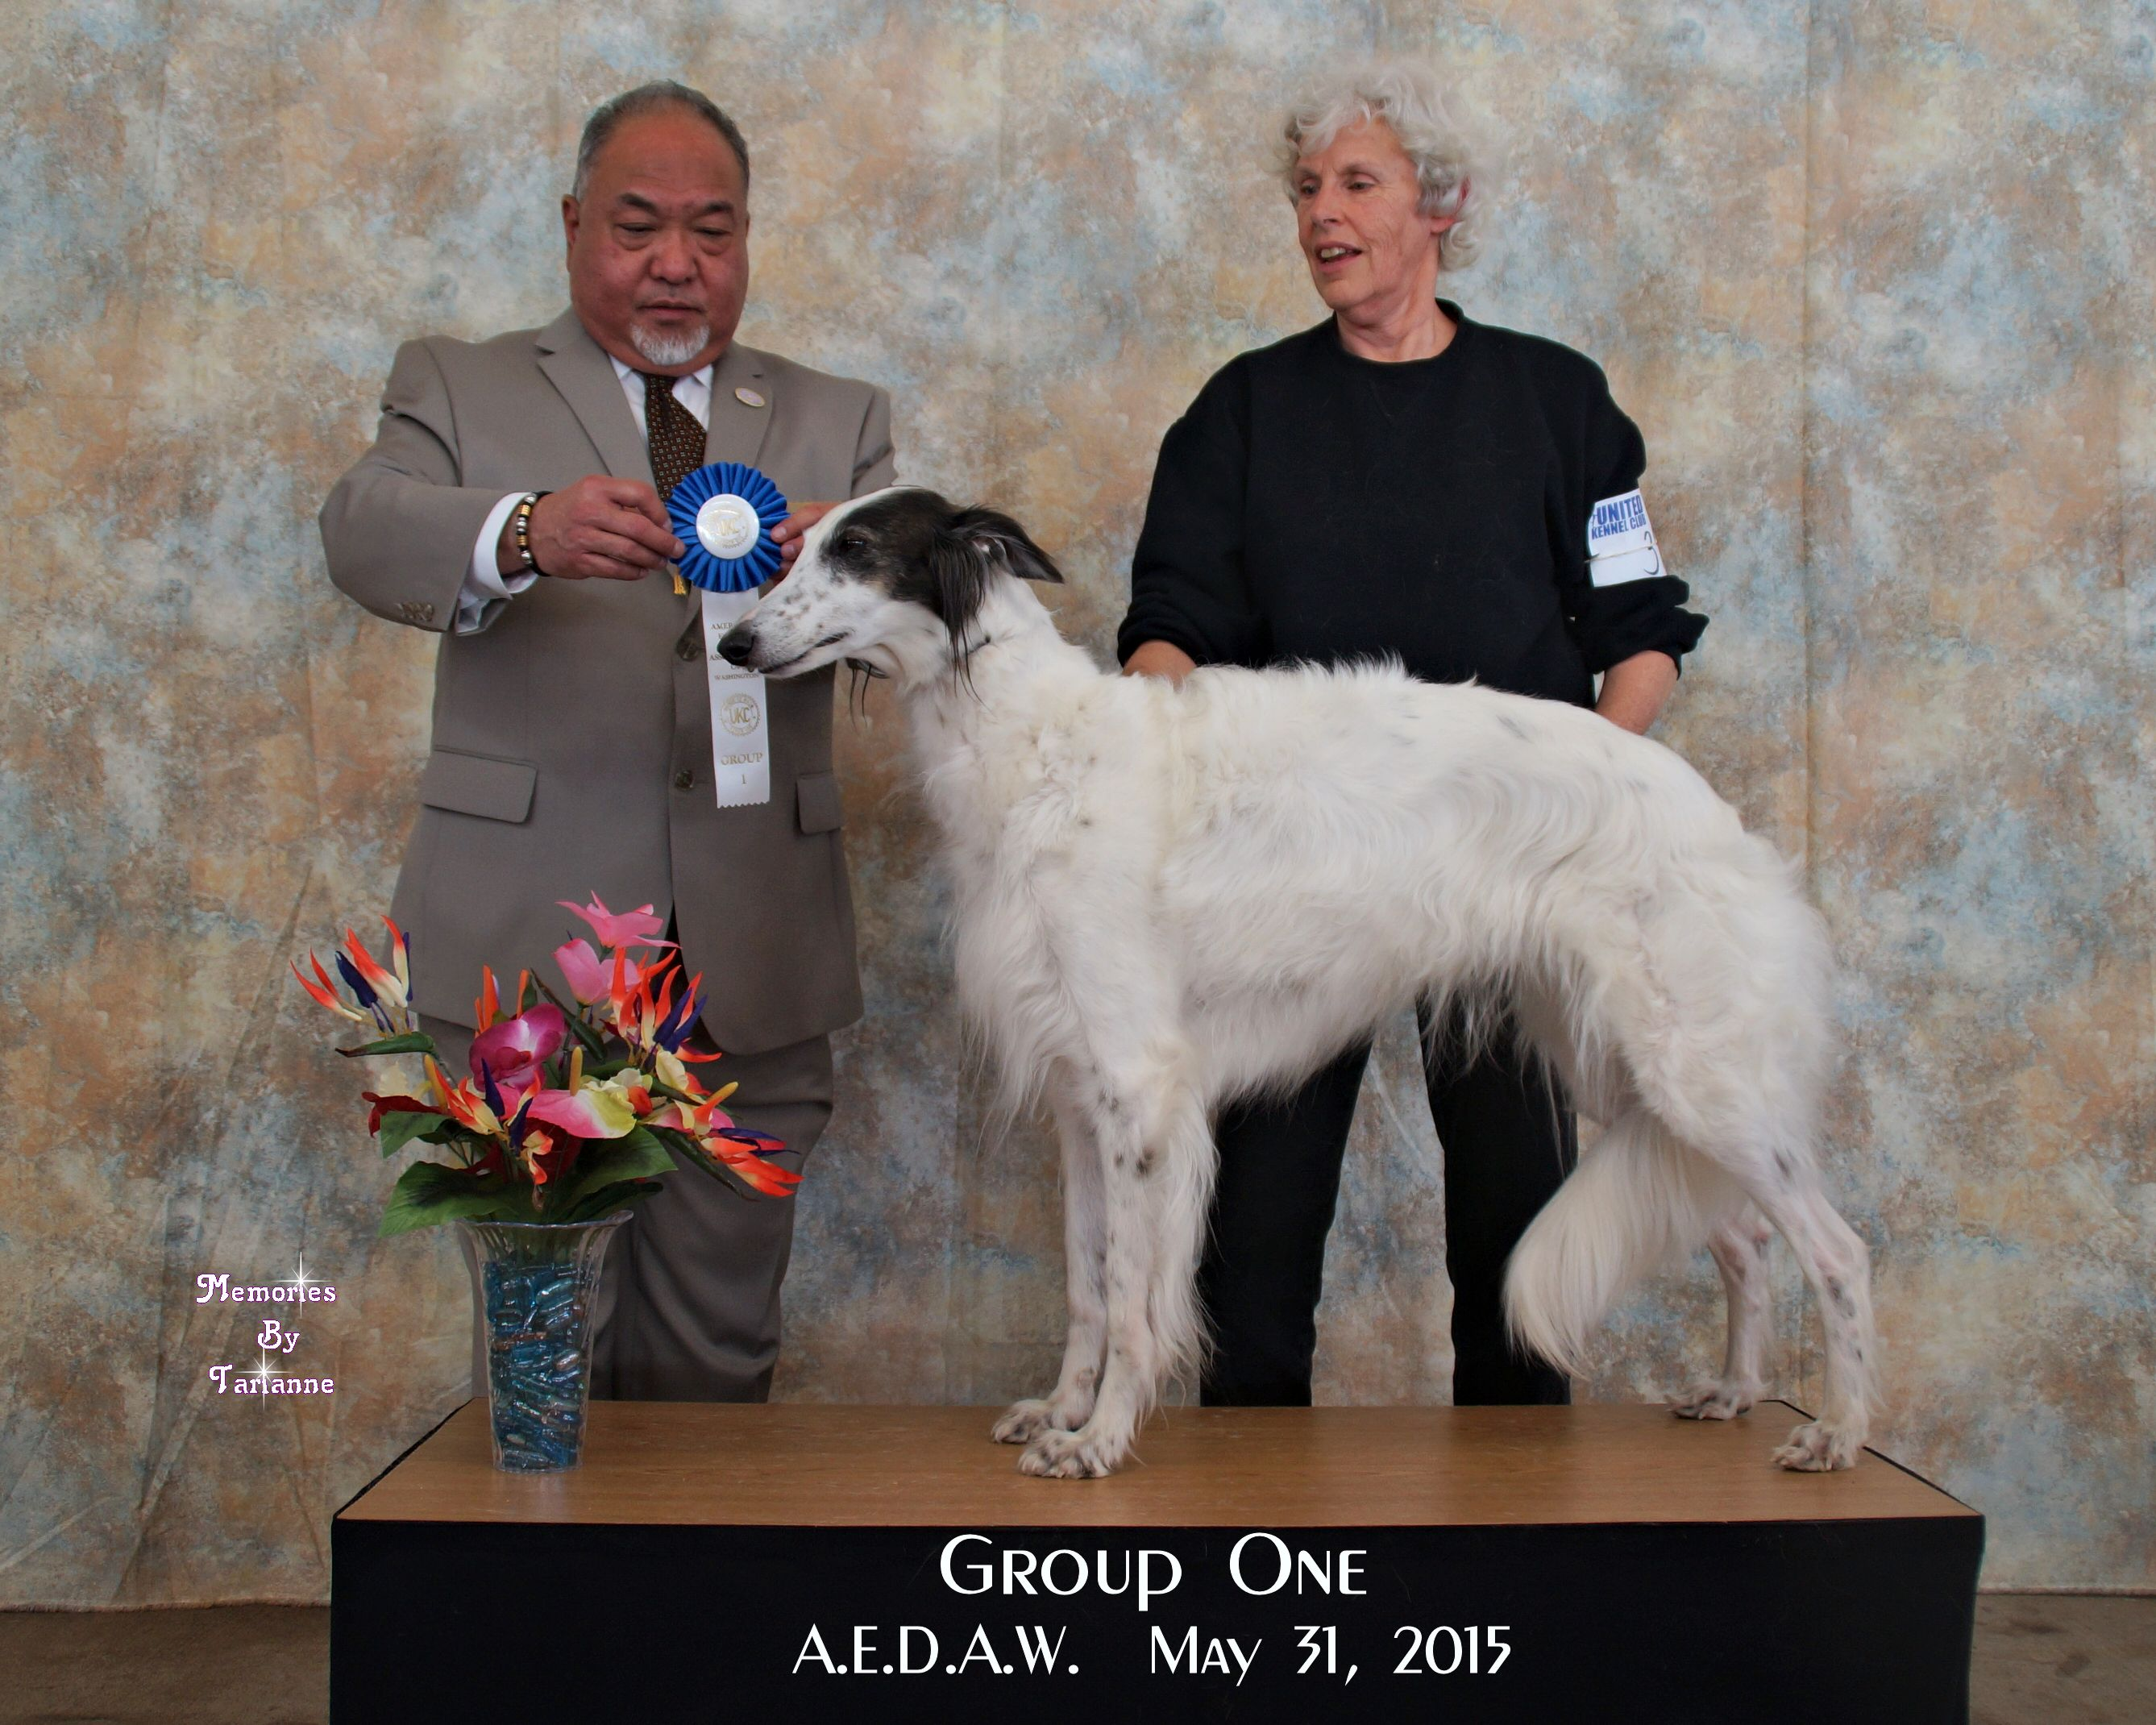 Bali Winning the Sighthound group 05/31/2015